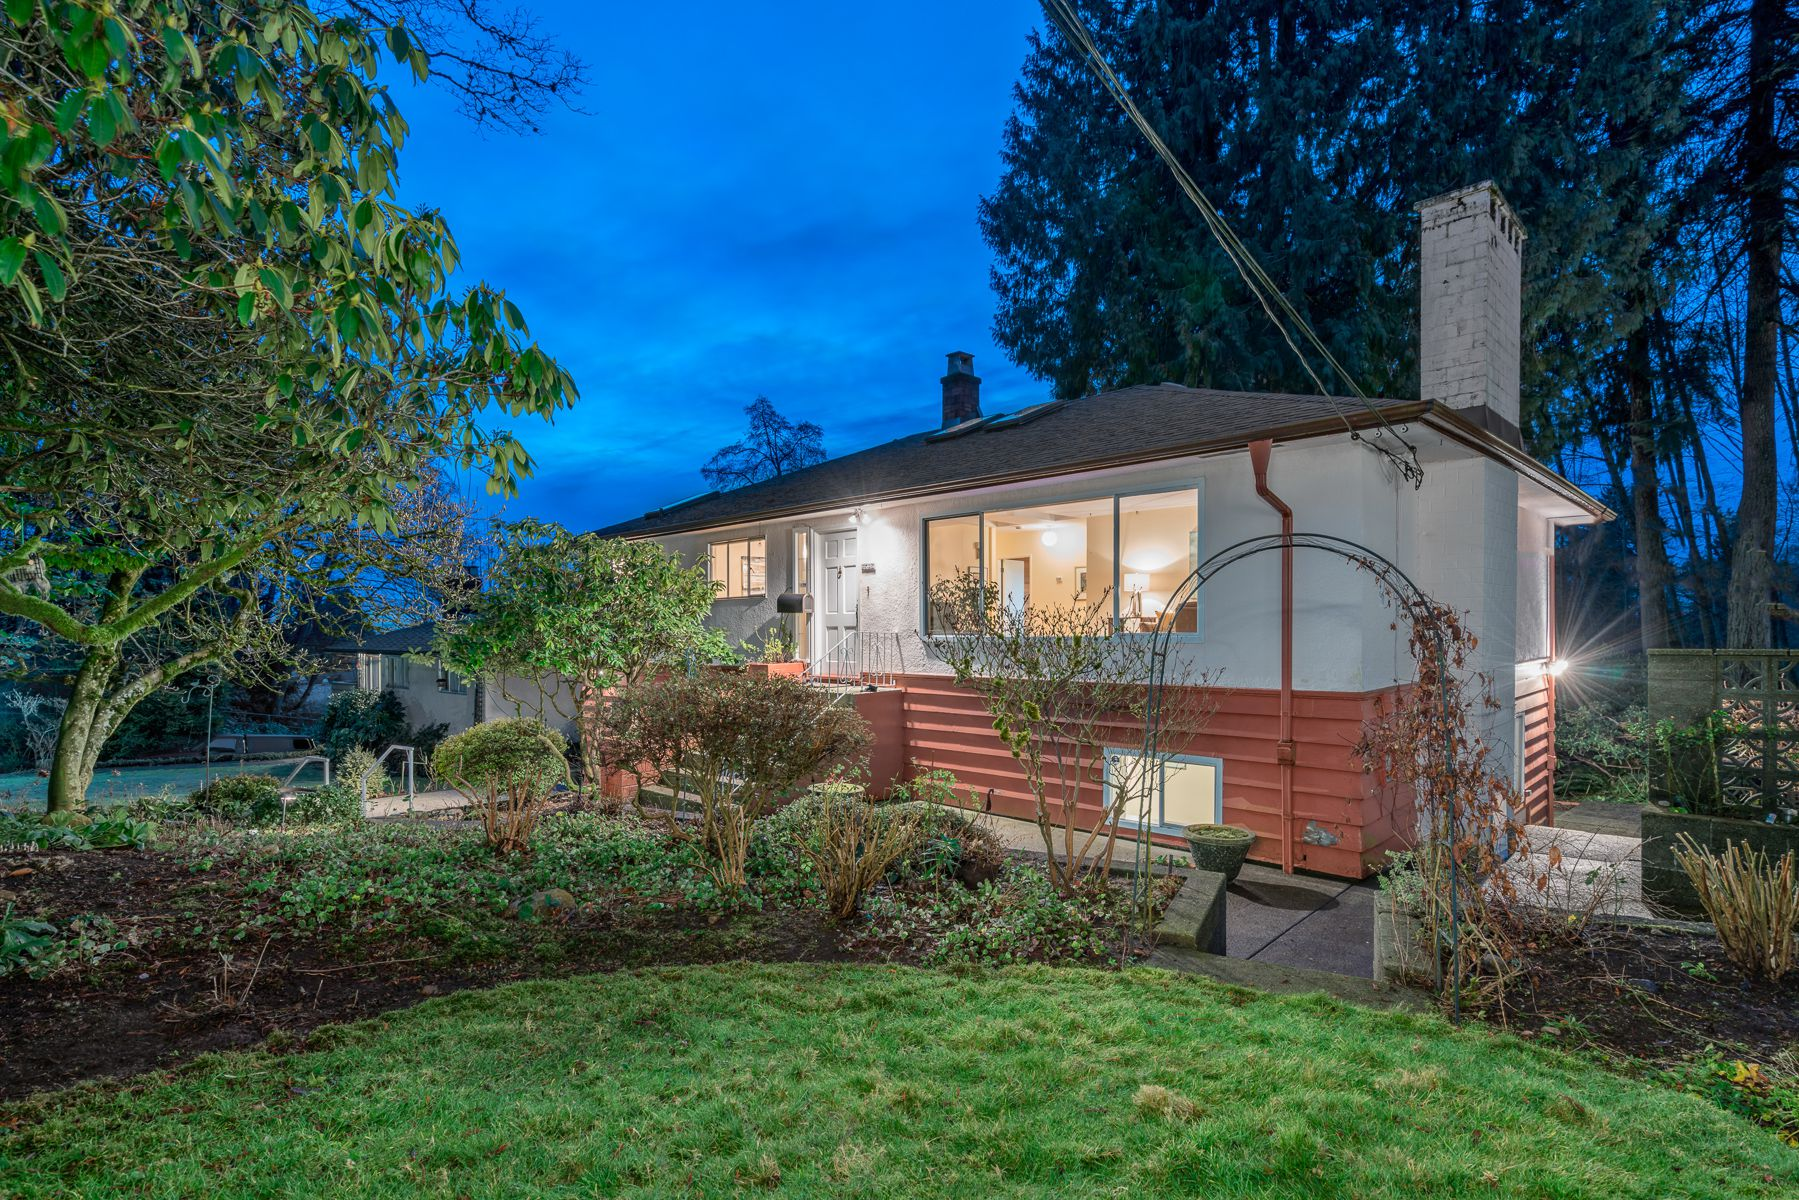 Main Photo: 3737 CALDER Avenue in North Vancouver: Upper Lonsdale House for sale : MLS®# R2233482